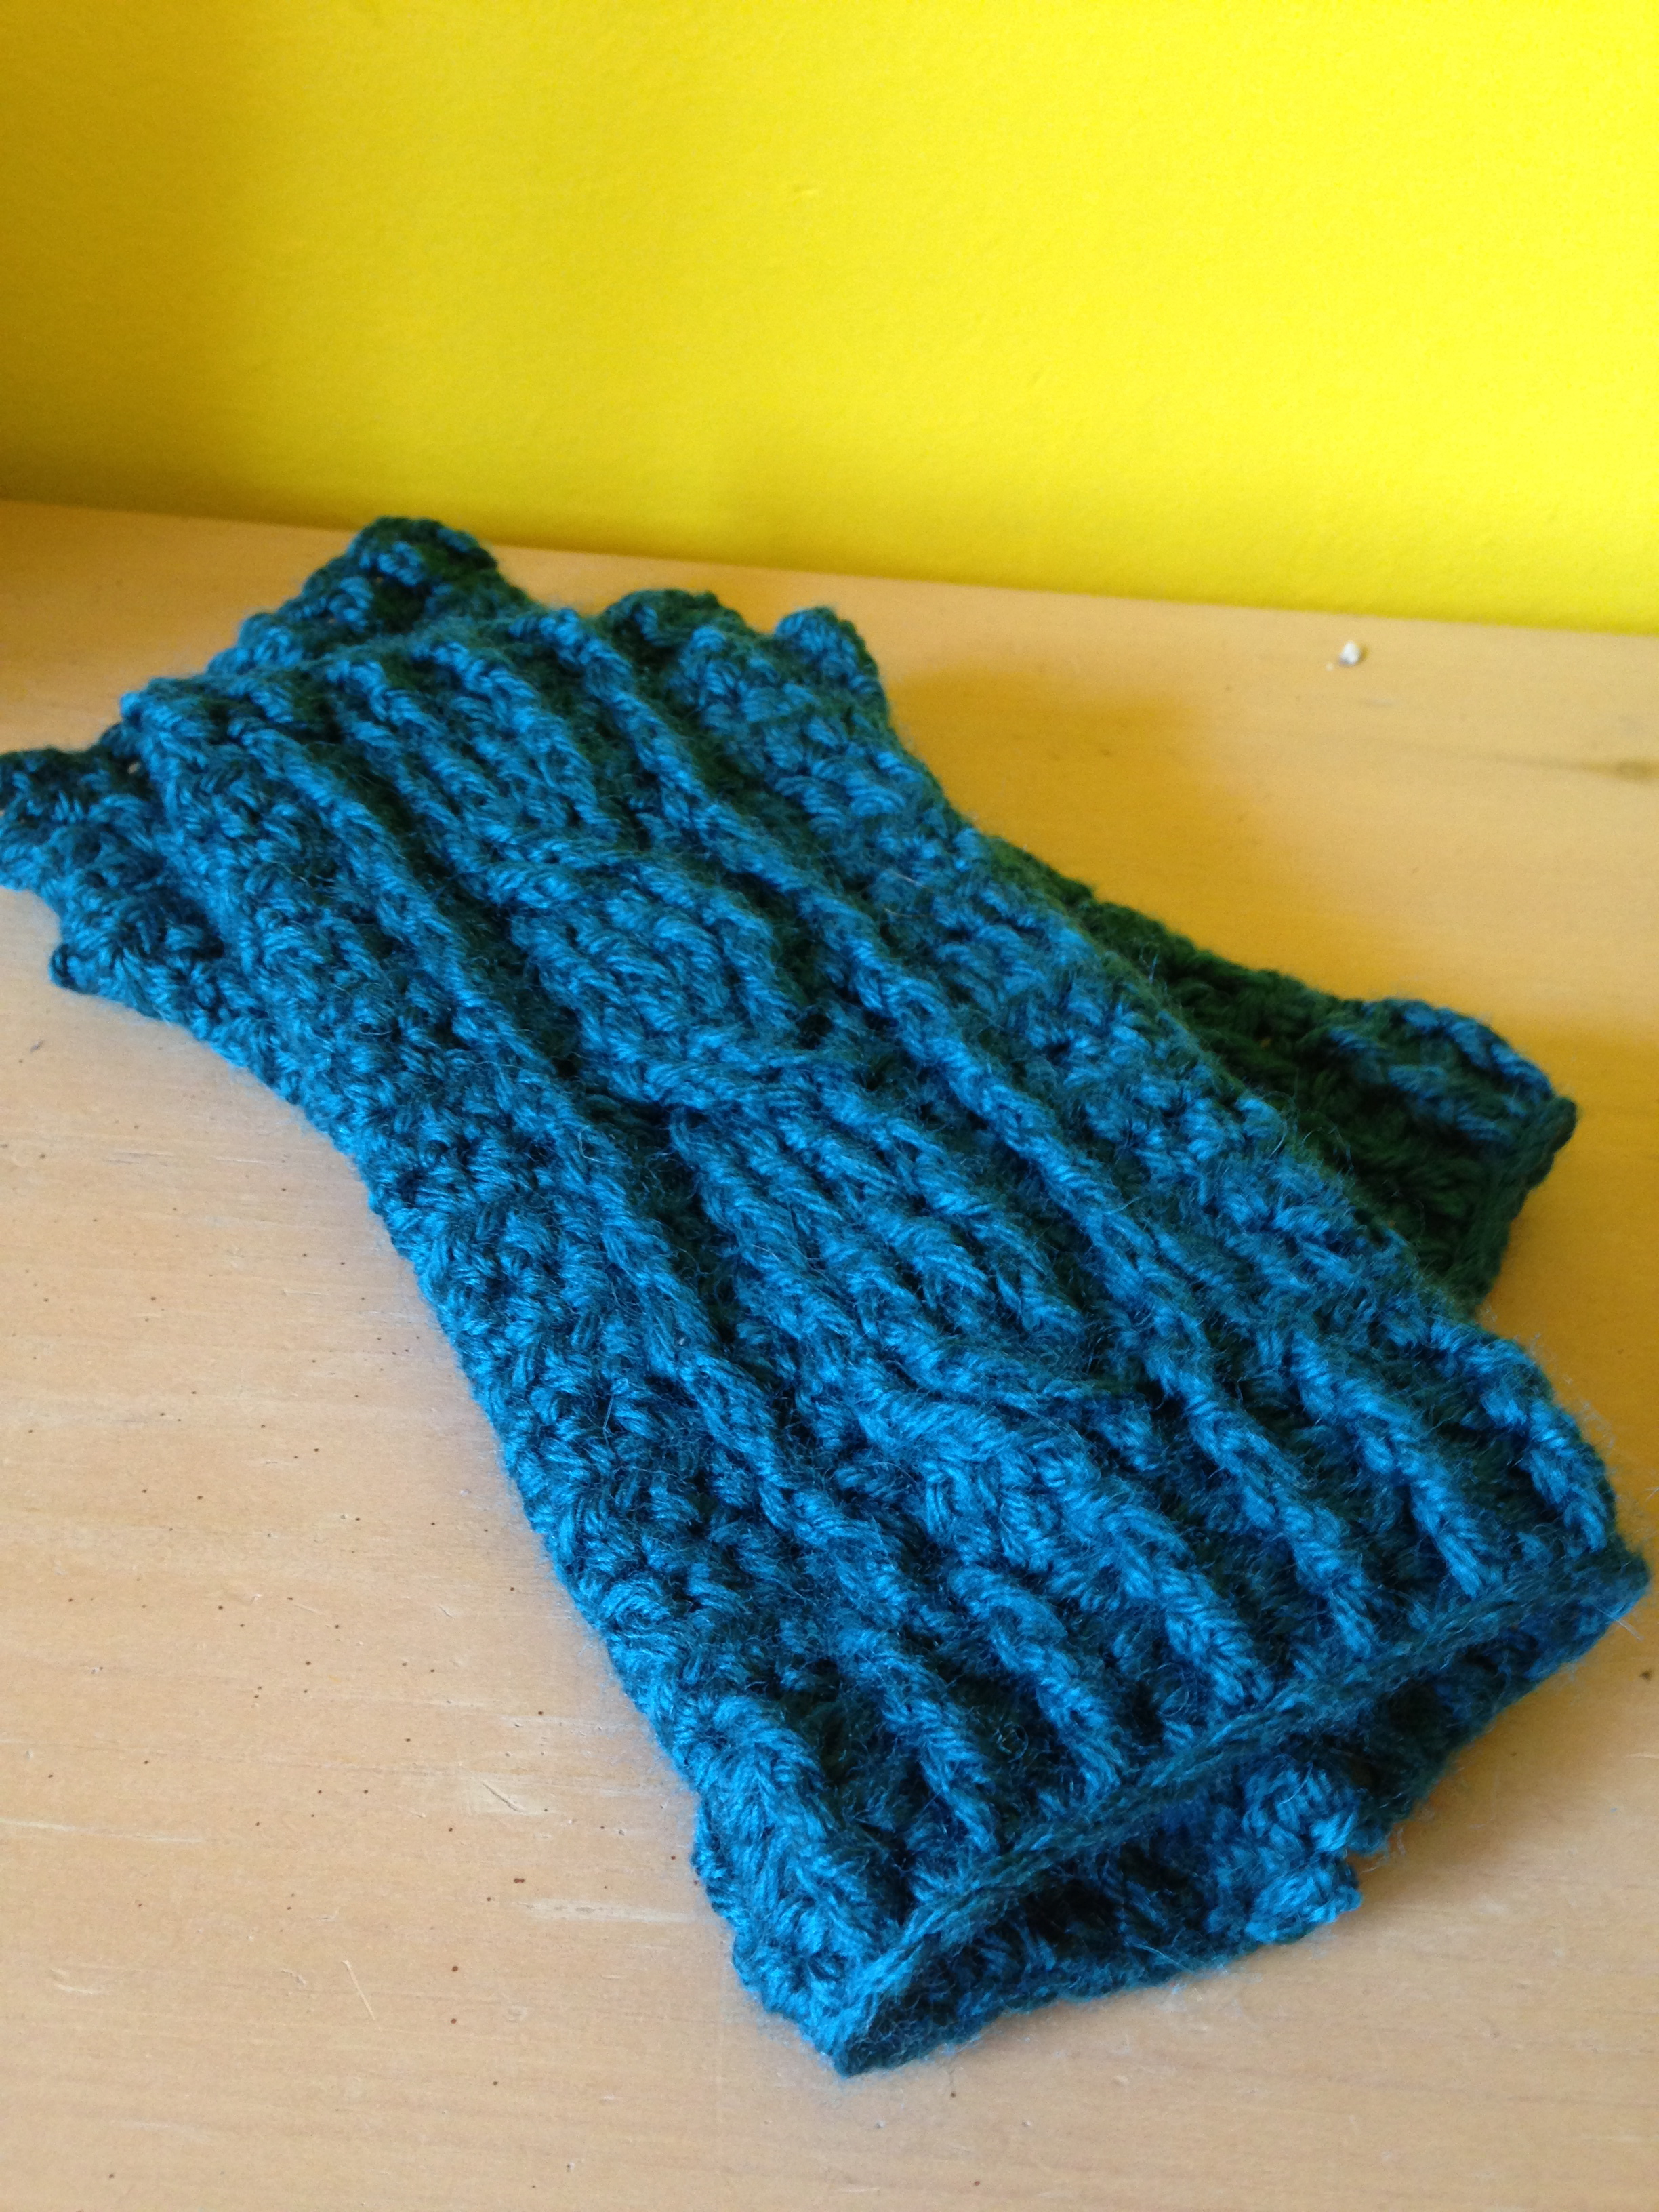 Cabled Hand Warmers